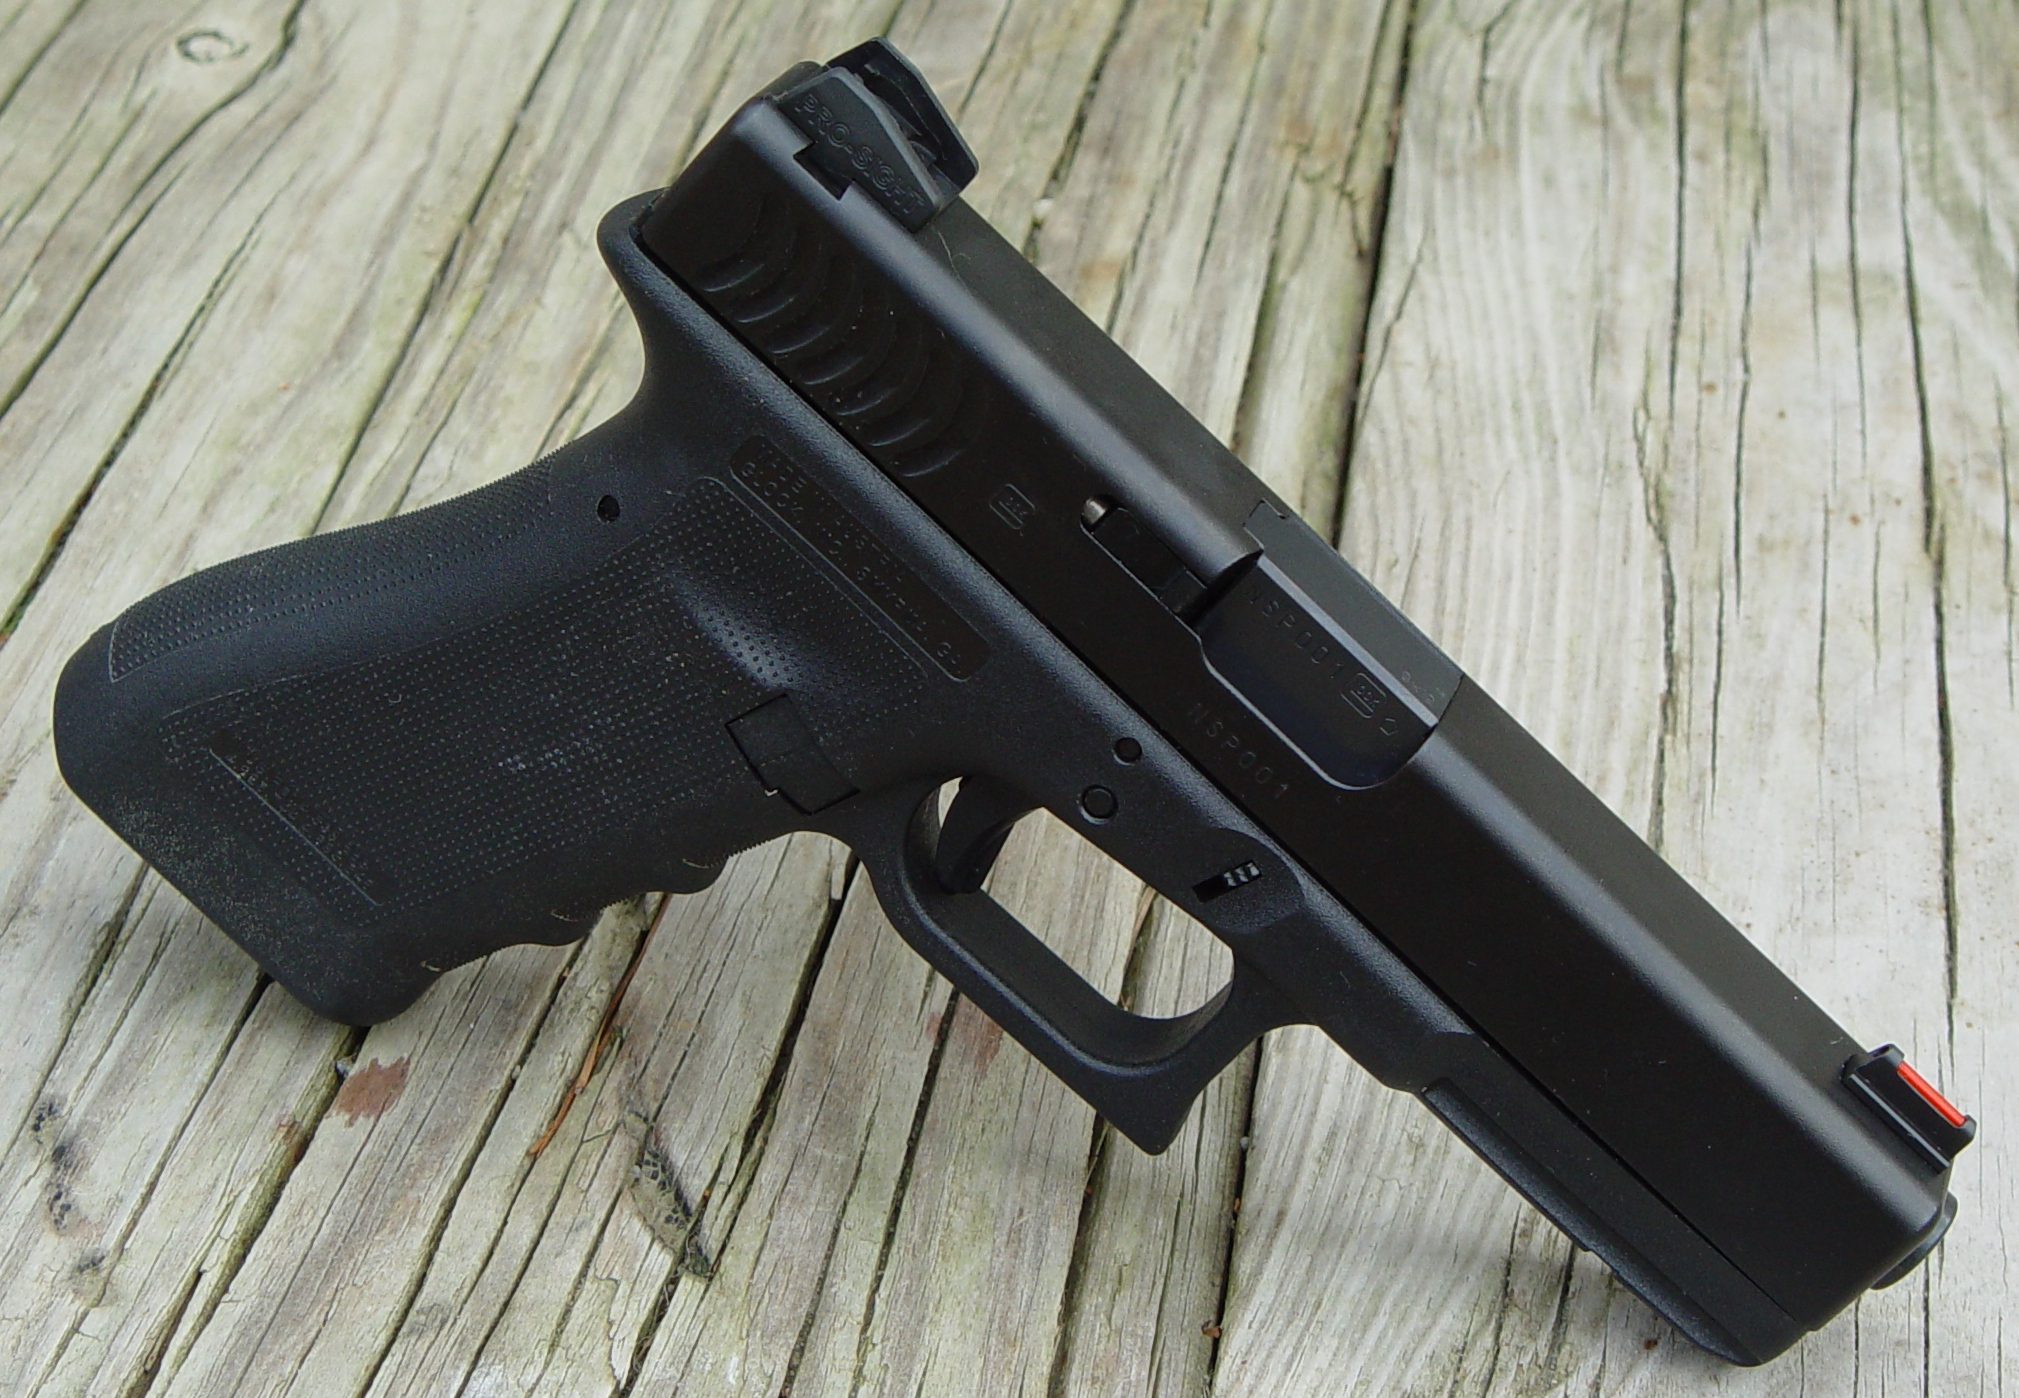 ABOVE: PRO-SIGHTS ON A GEN 3.5 GLOCK 17